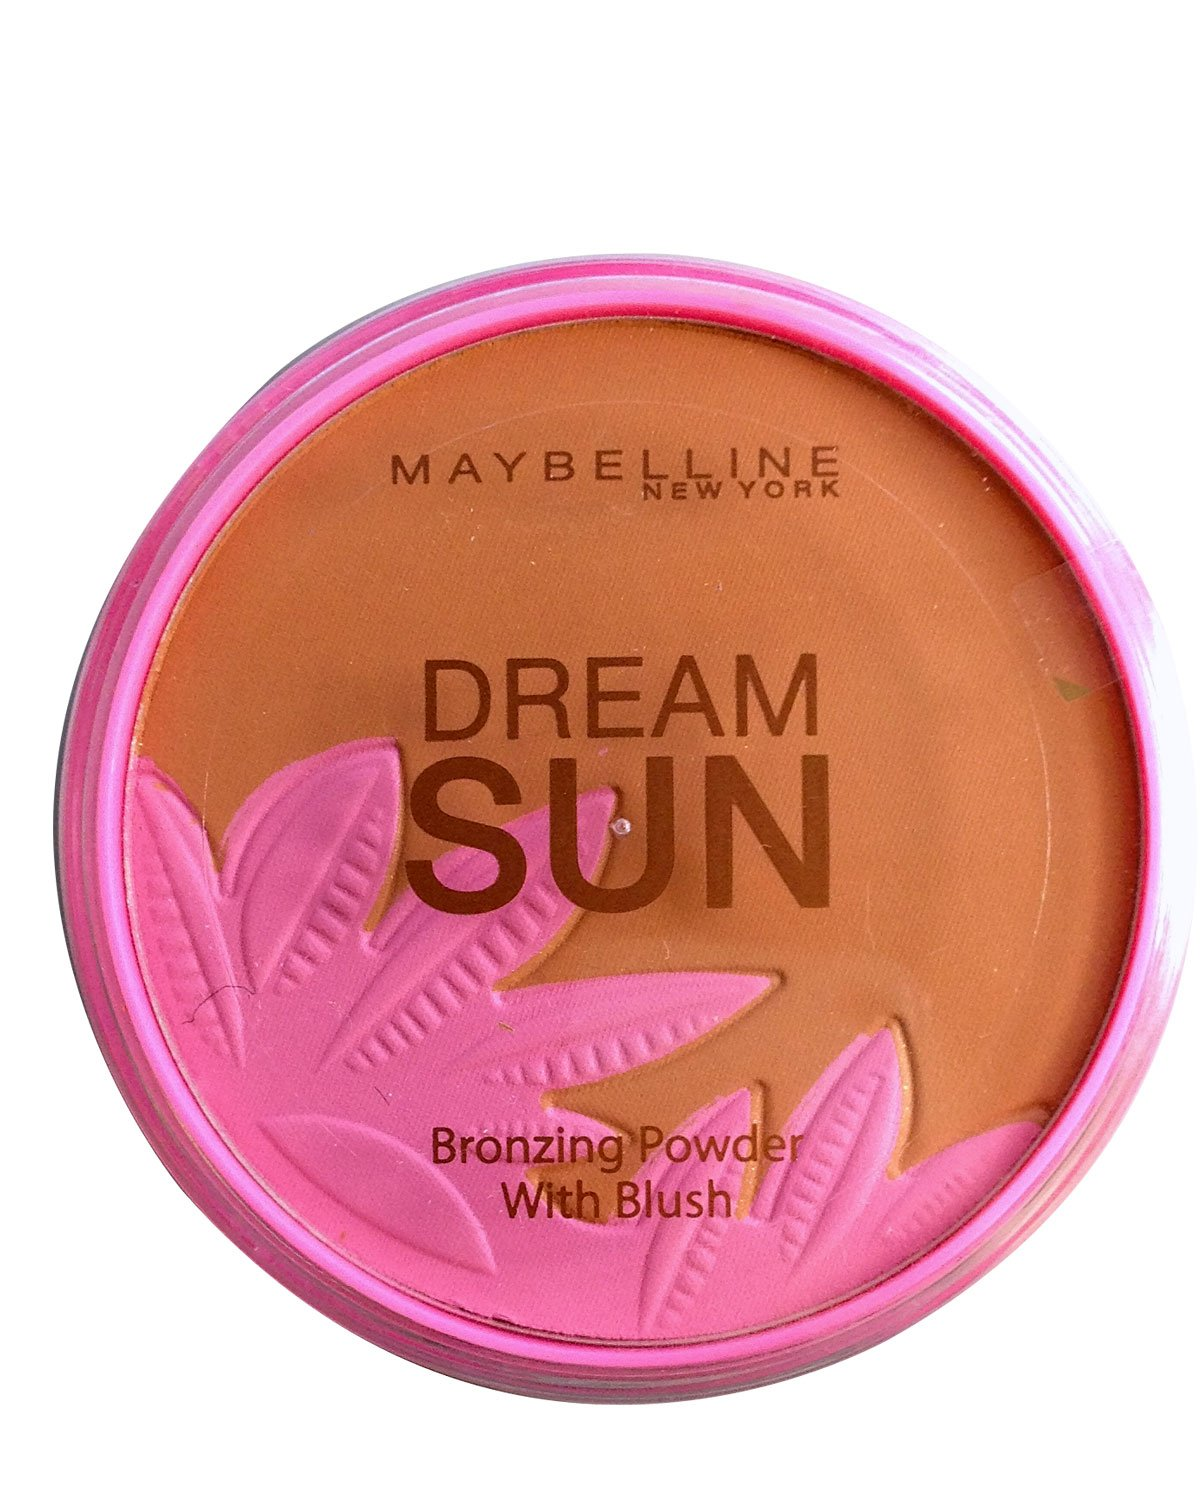 Dream Blusher, what dreams Blush in a dream to see 47